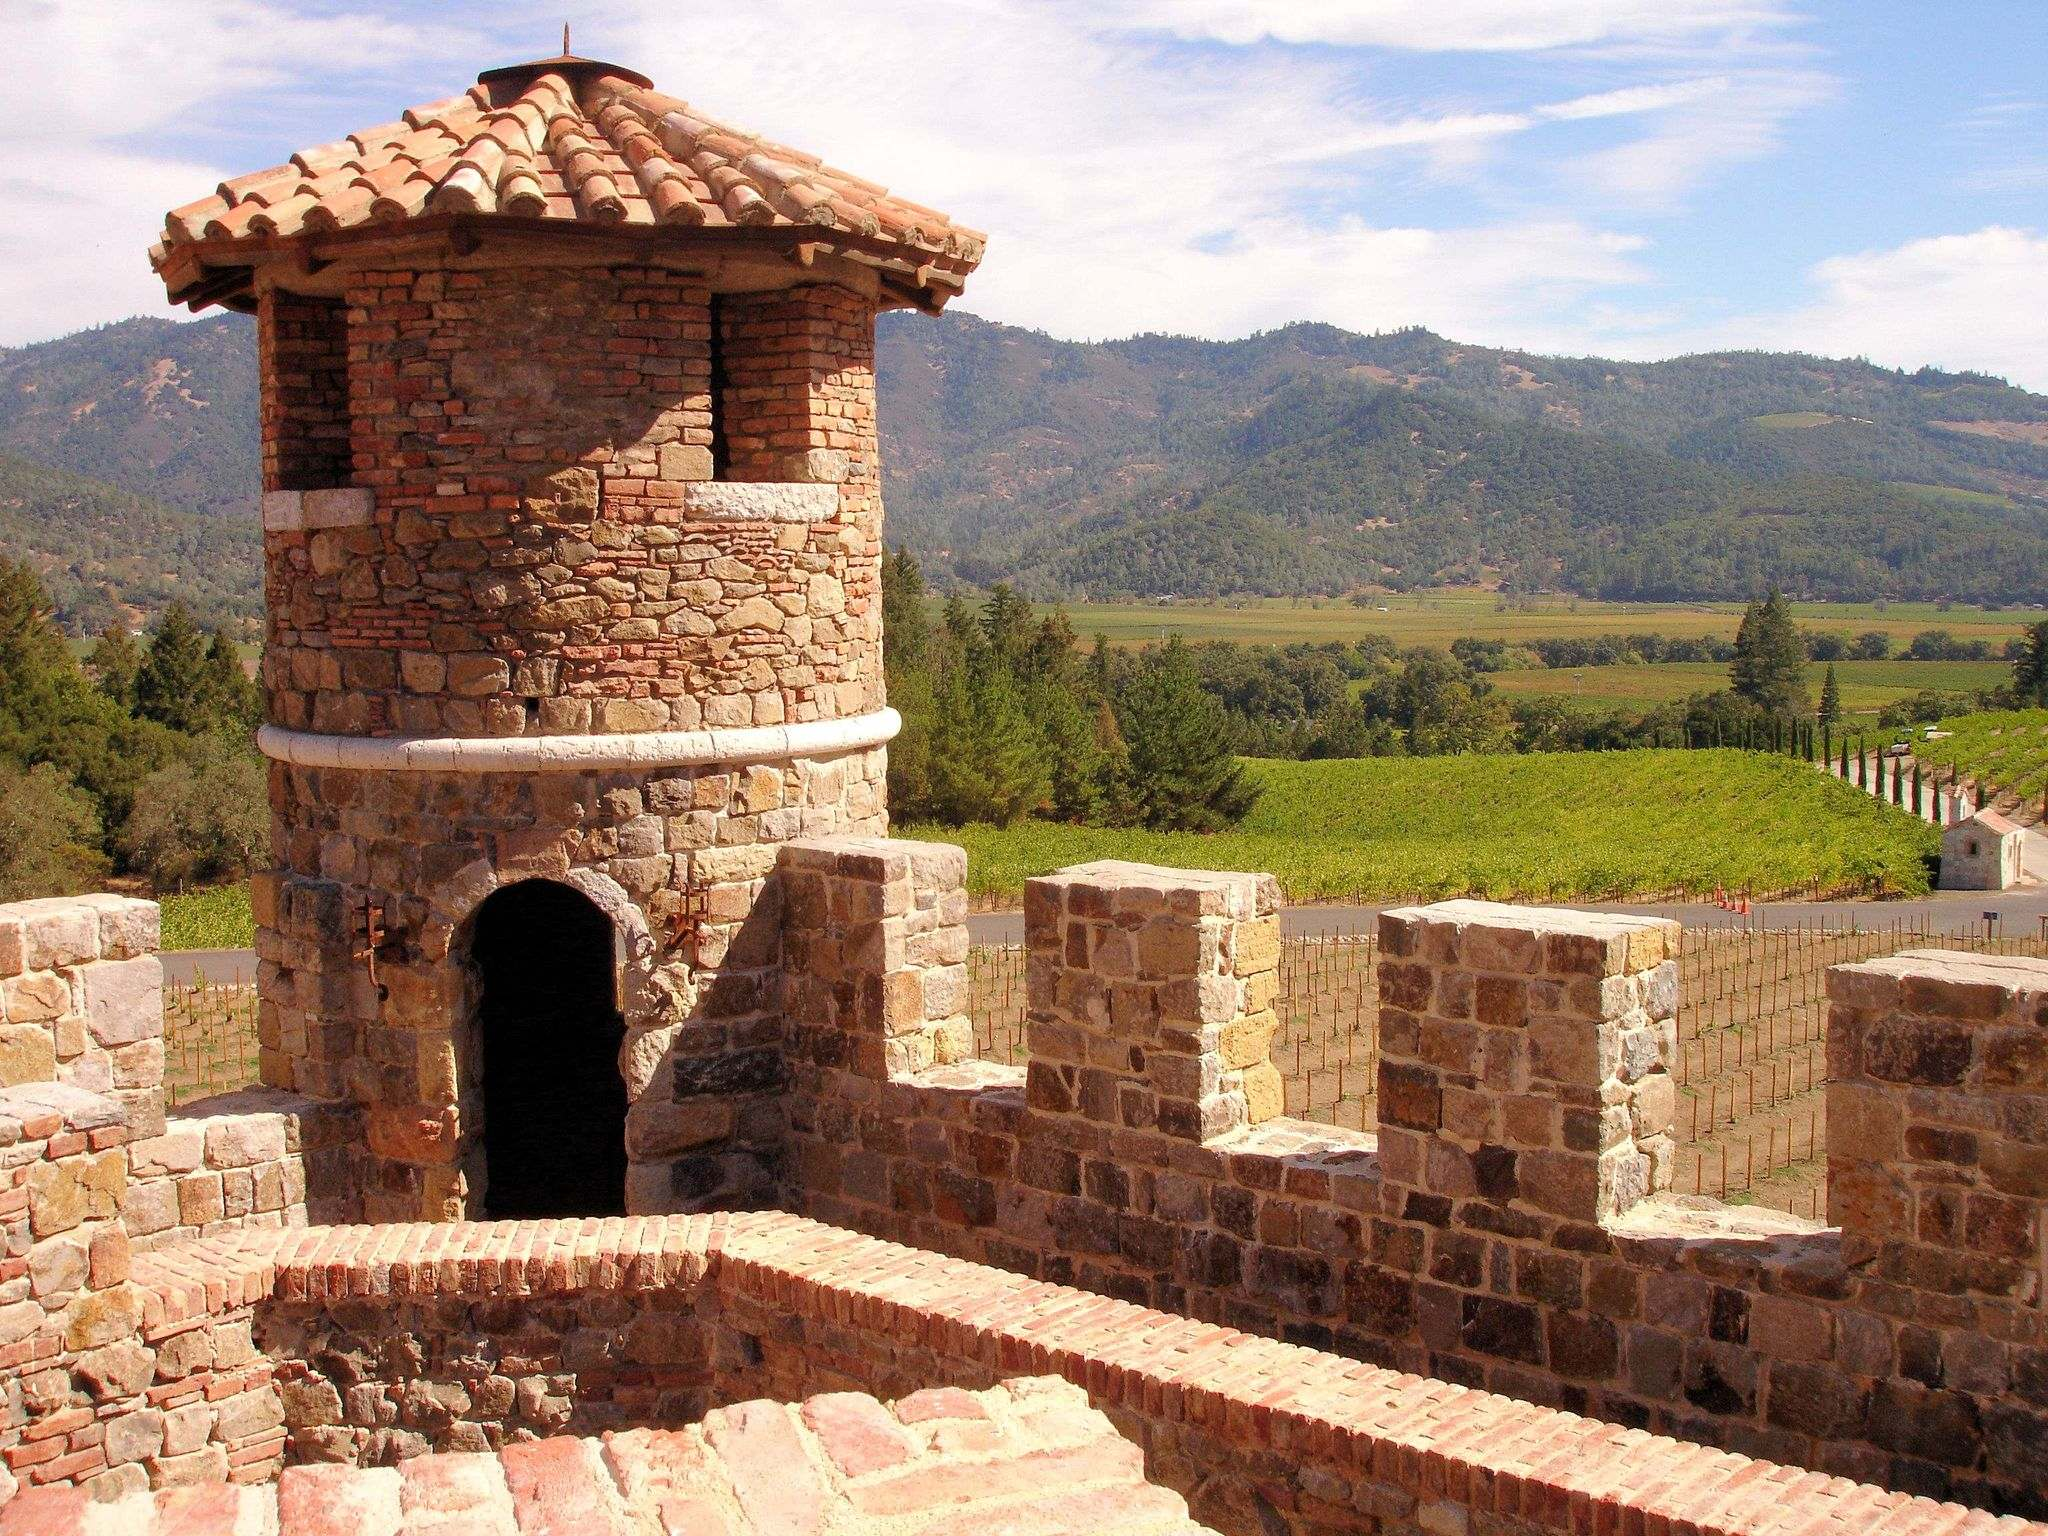 castello di amorosa3 Castello di Amorosa Winery in Napa Valley, California